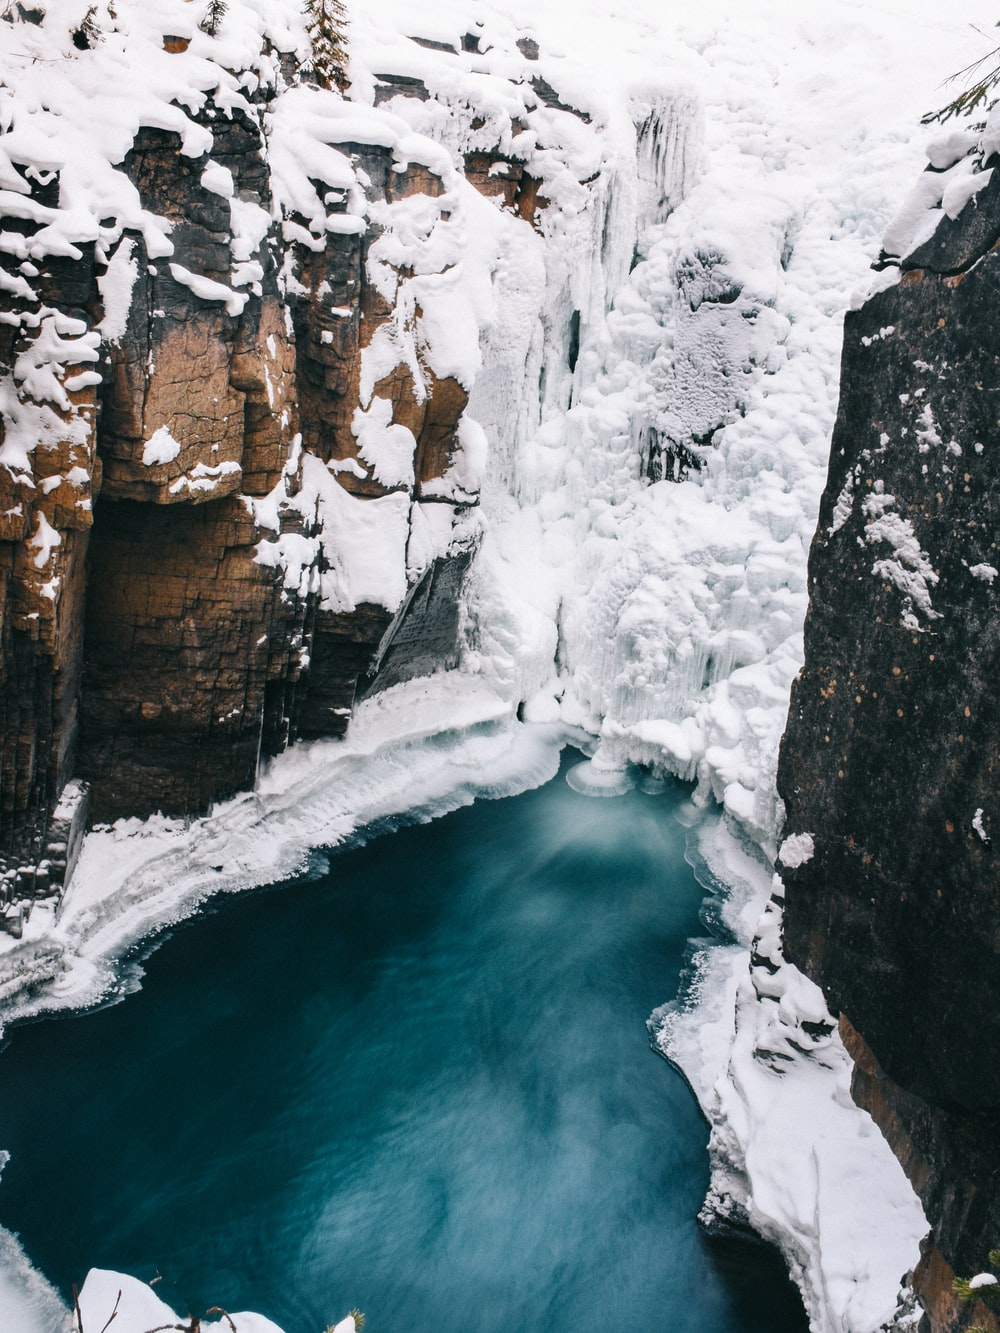 snow covered rock formation beside body of water